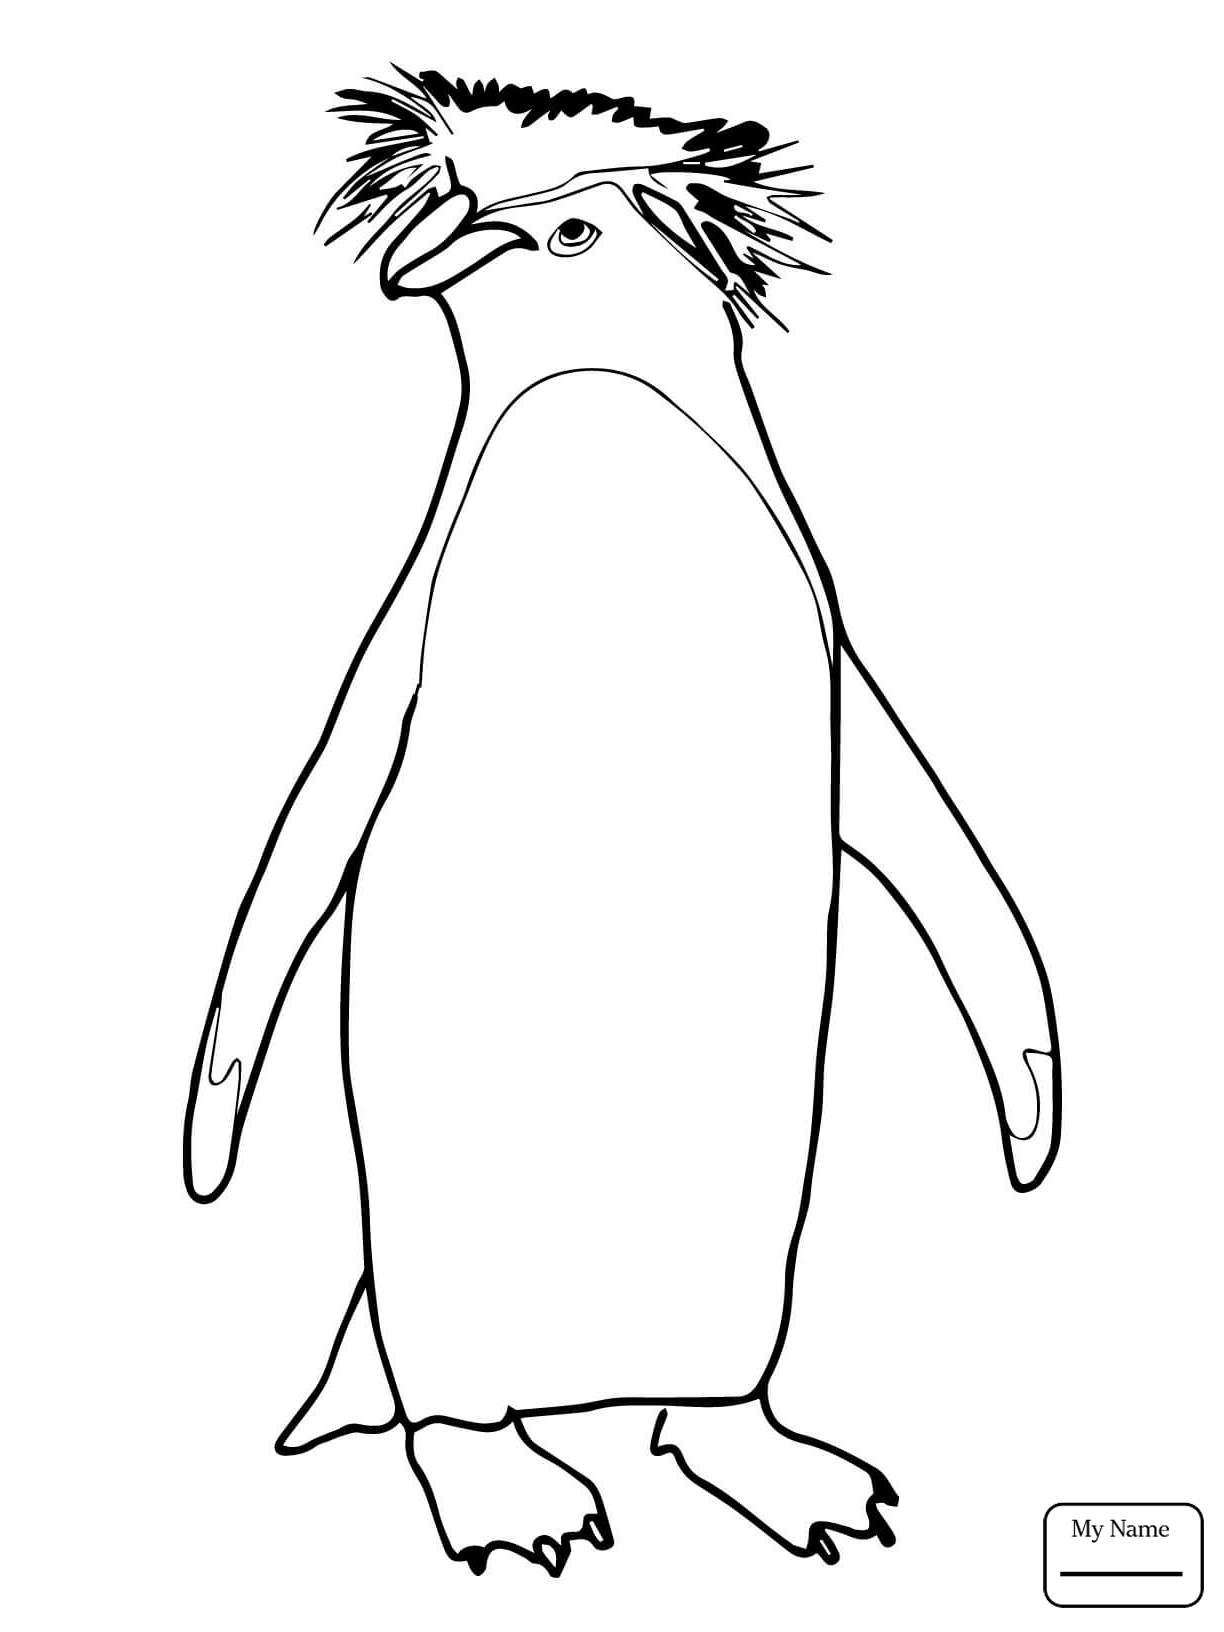 Baby Penguin Drawing at GetDrawings.com | Free for personal use Baby ...